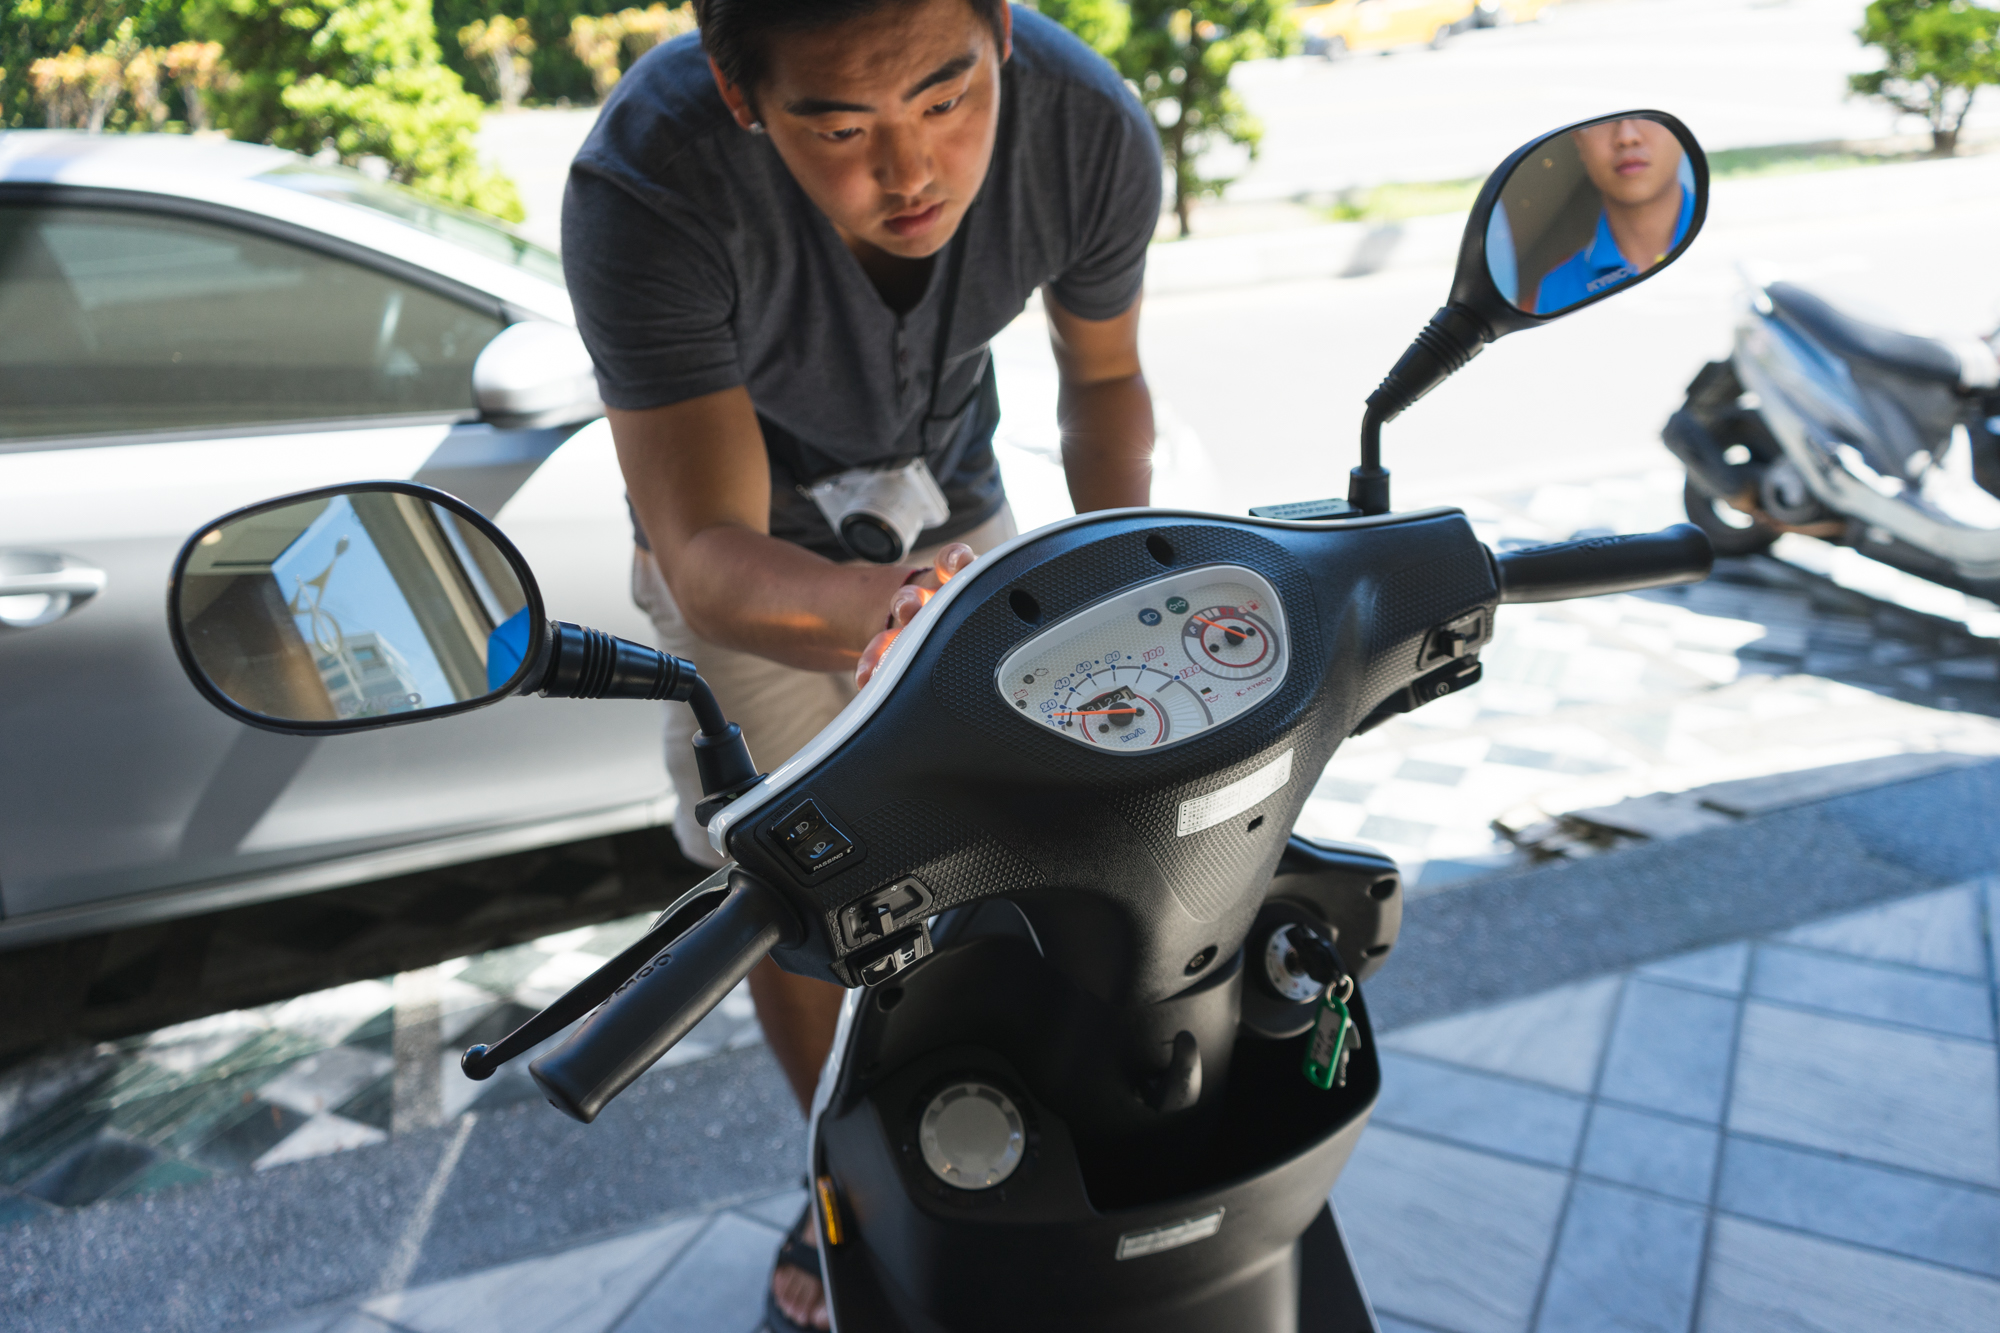 Renting a Scooter in Hualien Taiwan